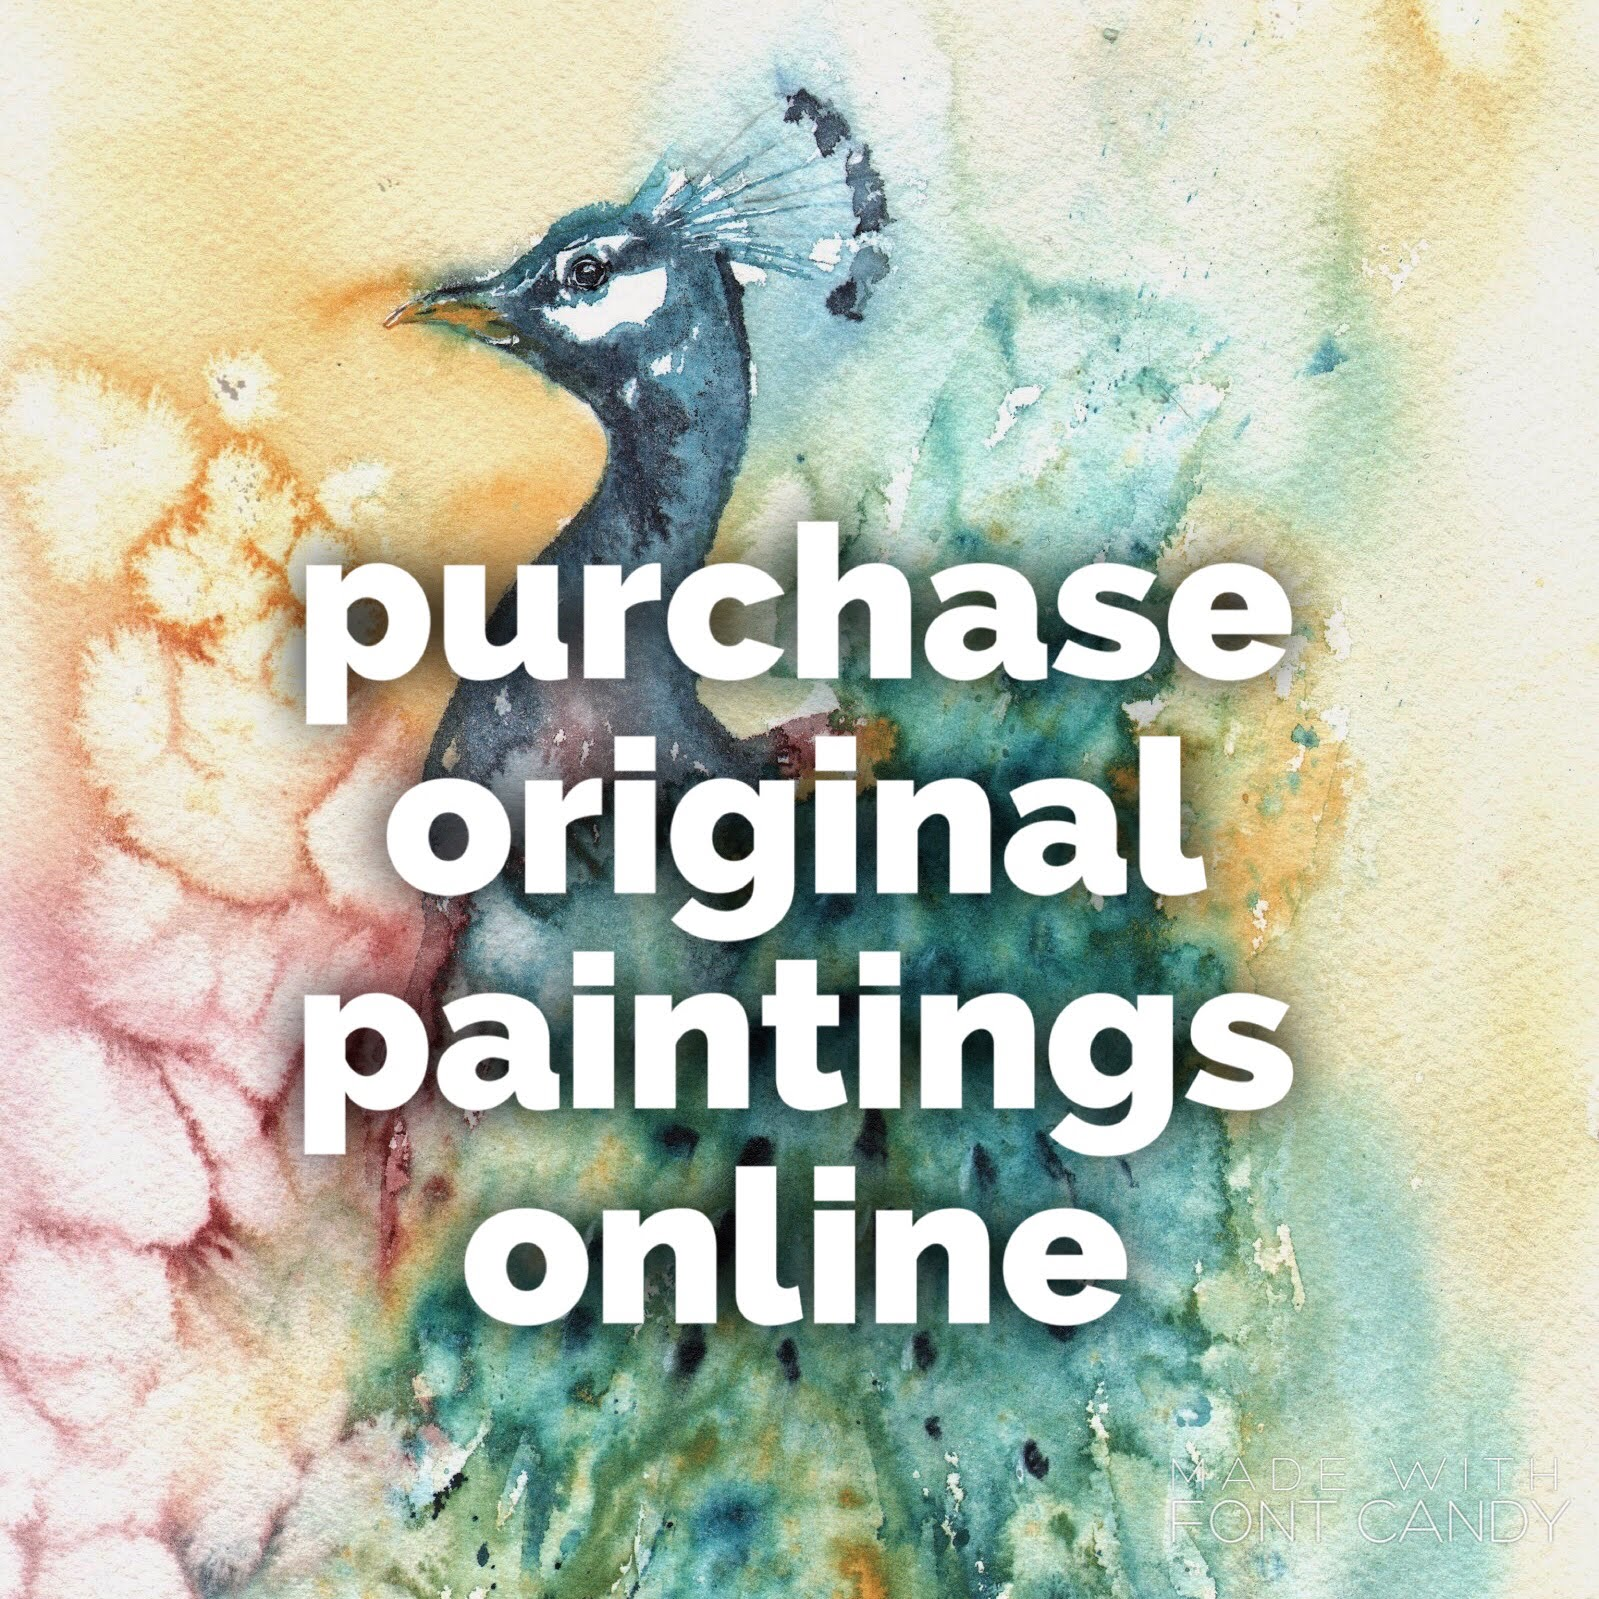 purchase original paintings direct from the studio...